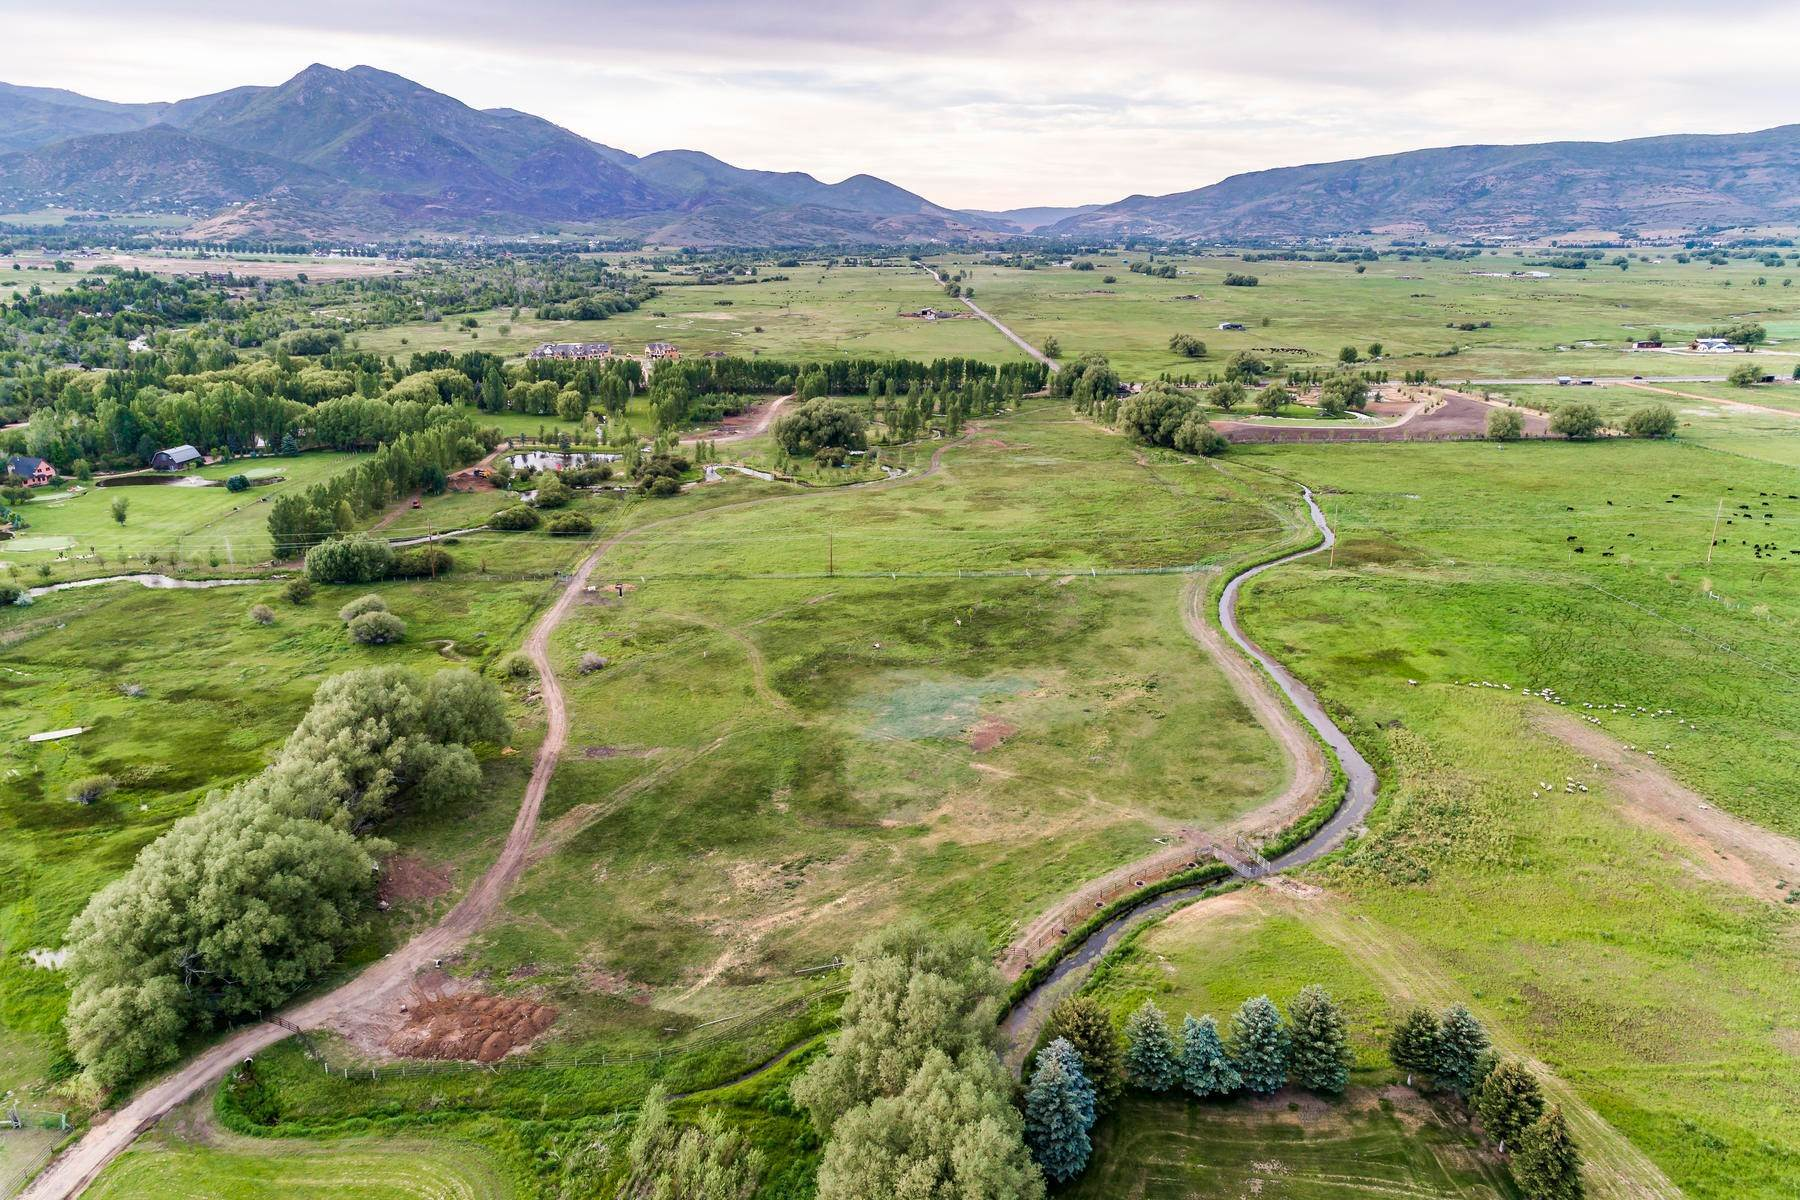 2. Land for Sale at Beautiful 7.68 Acre Lot Near The Provo River 1500 W Midway Ln, #9 Heber, Utah 84032 United States